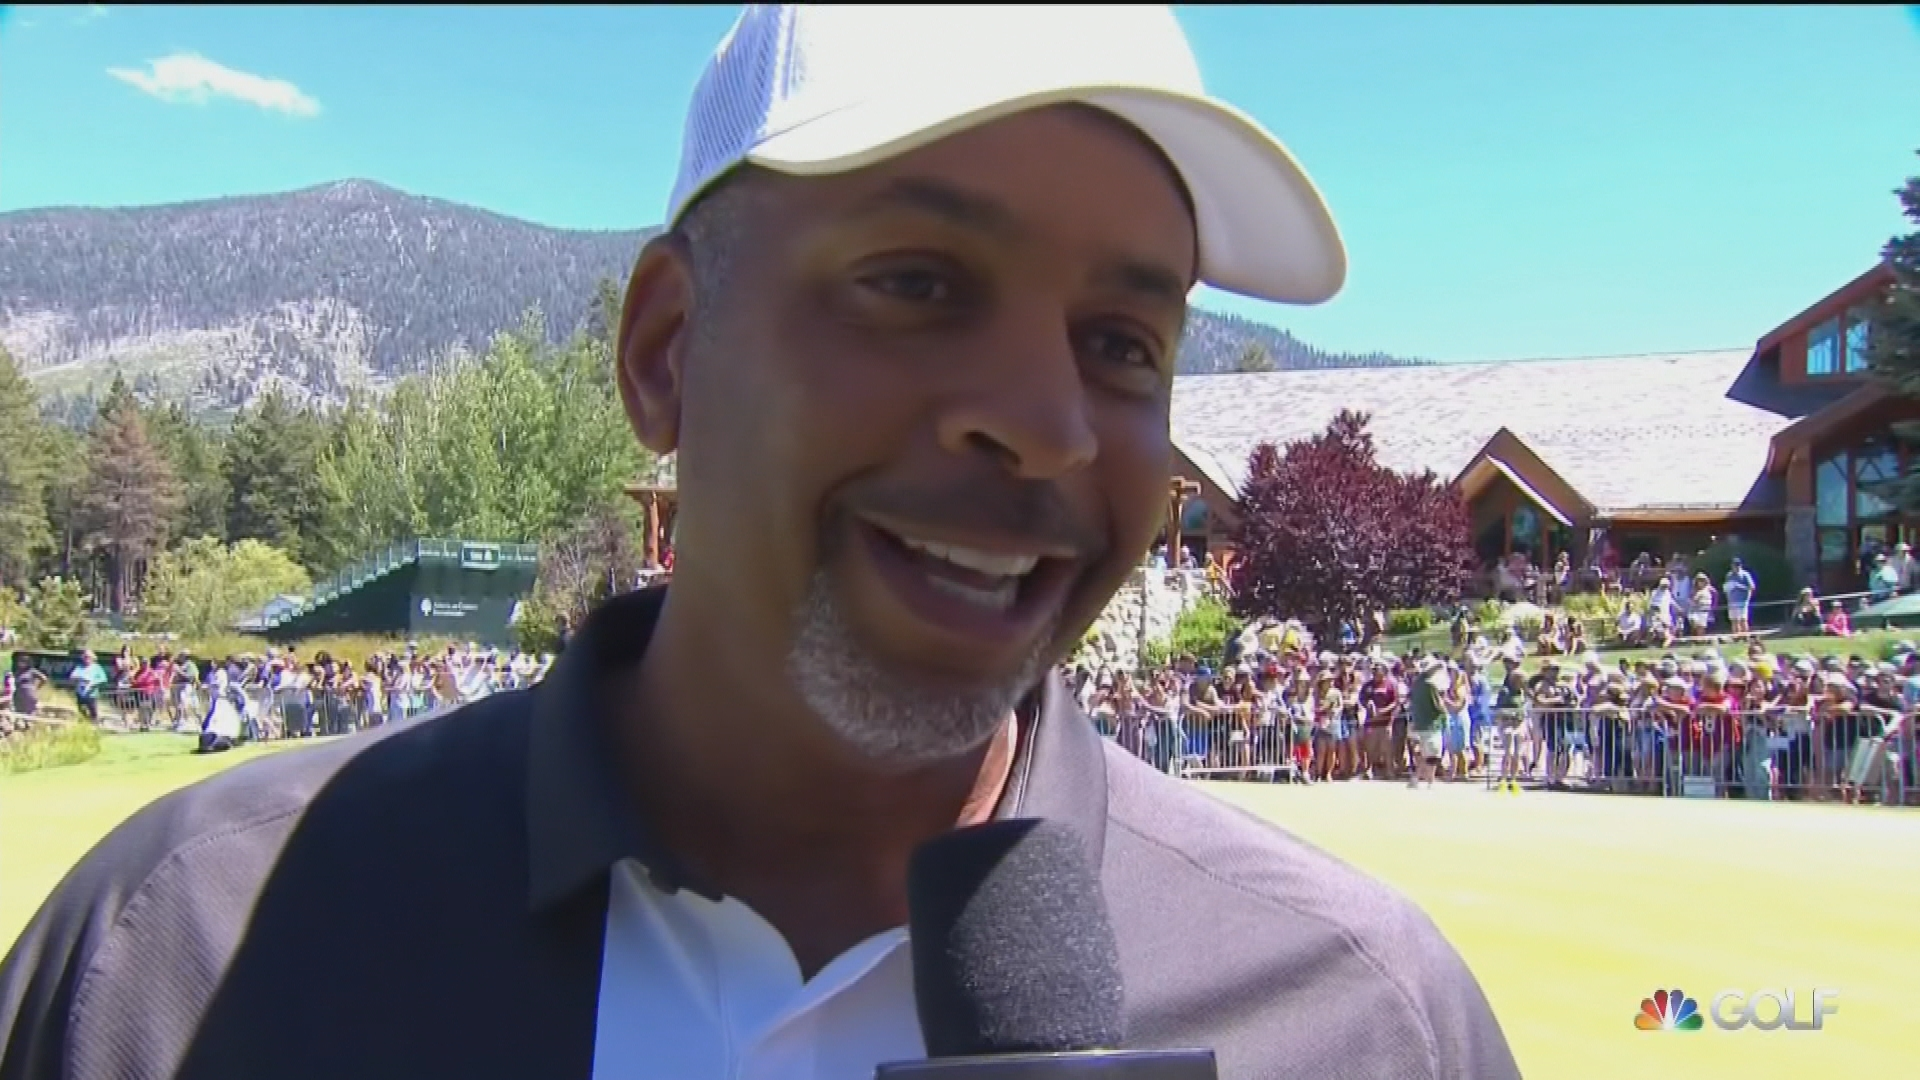 Dell Curry reveals bet with Steph at 2019 ACC golf tournament